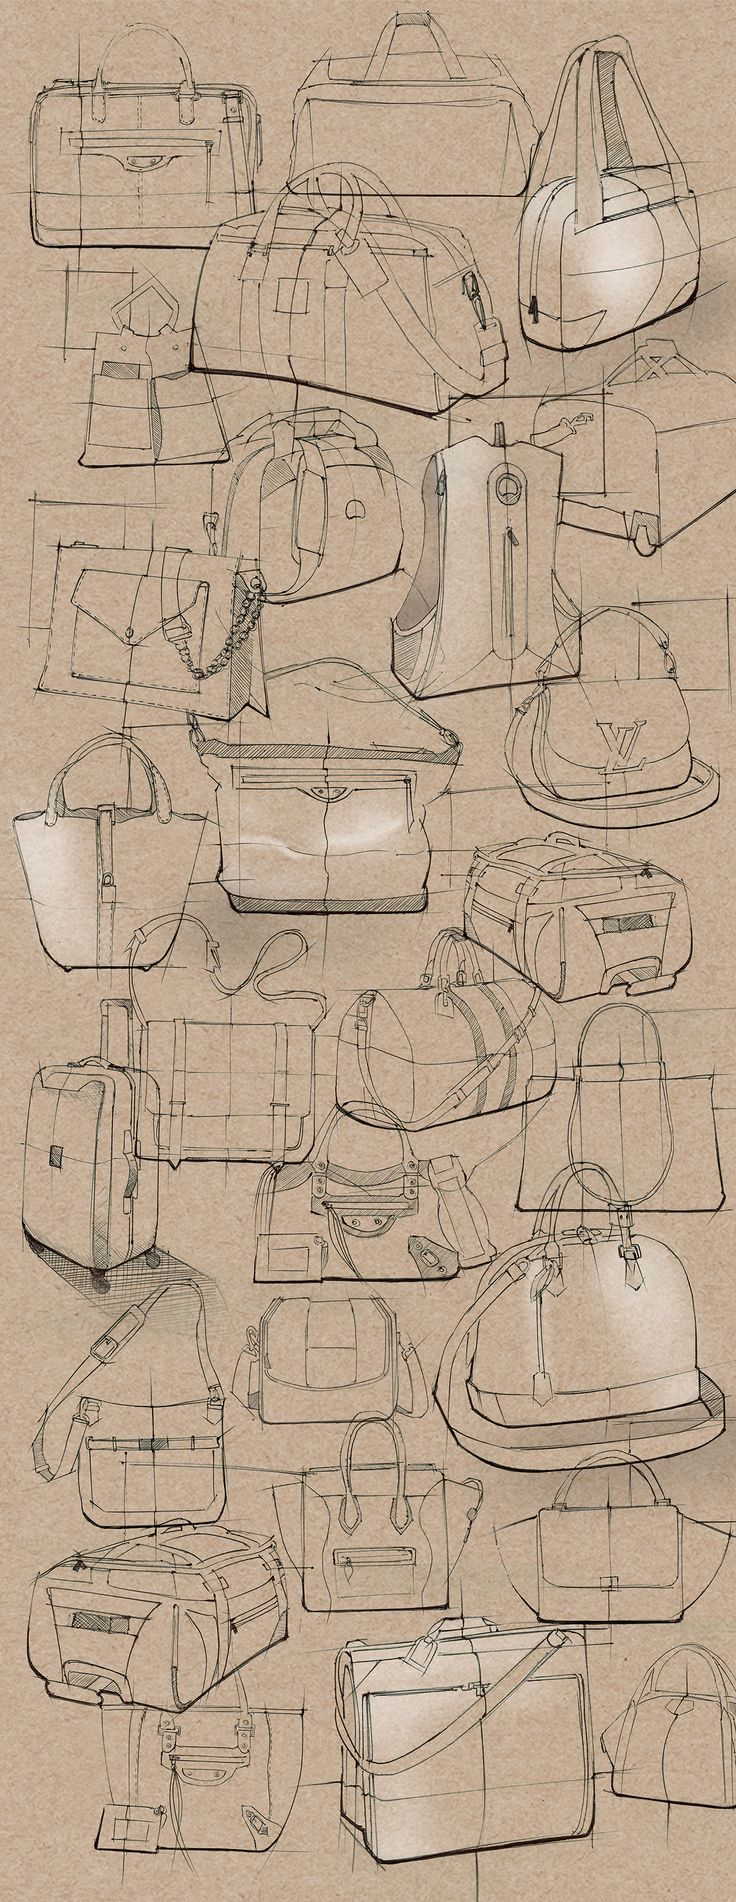 Drawn purse hatched Bag and sketches images more